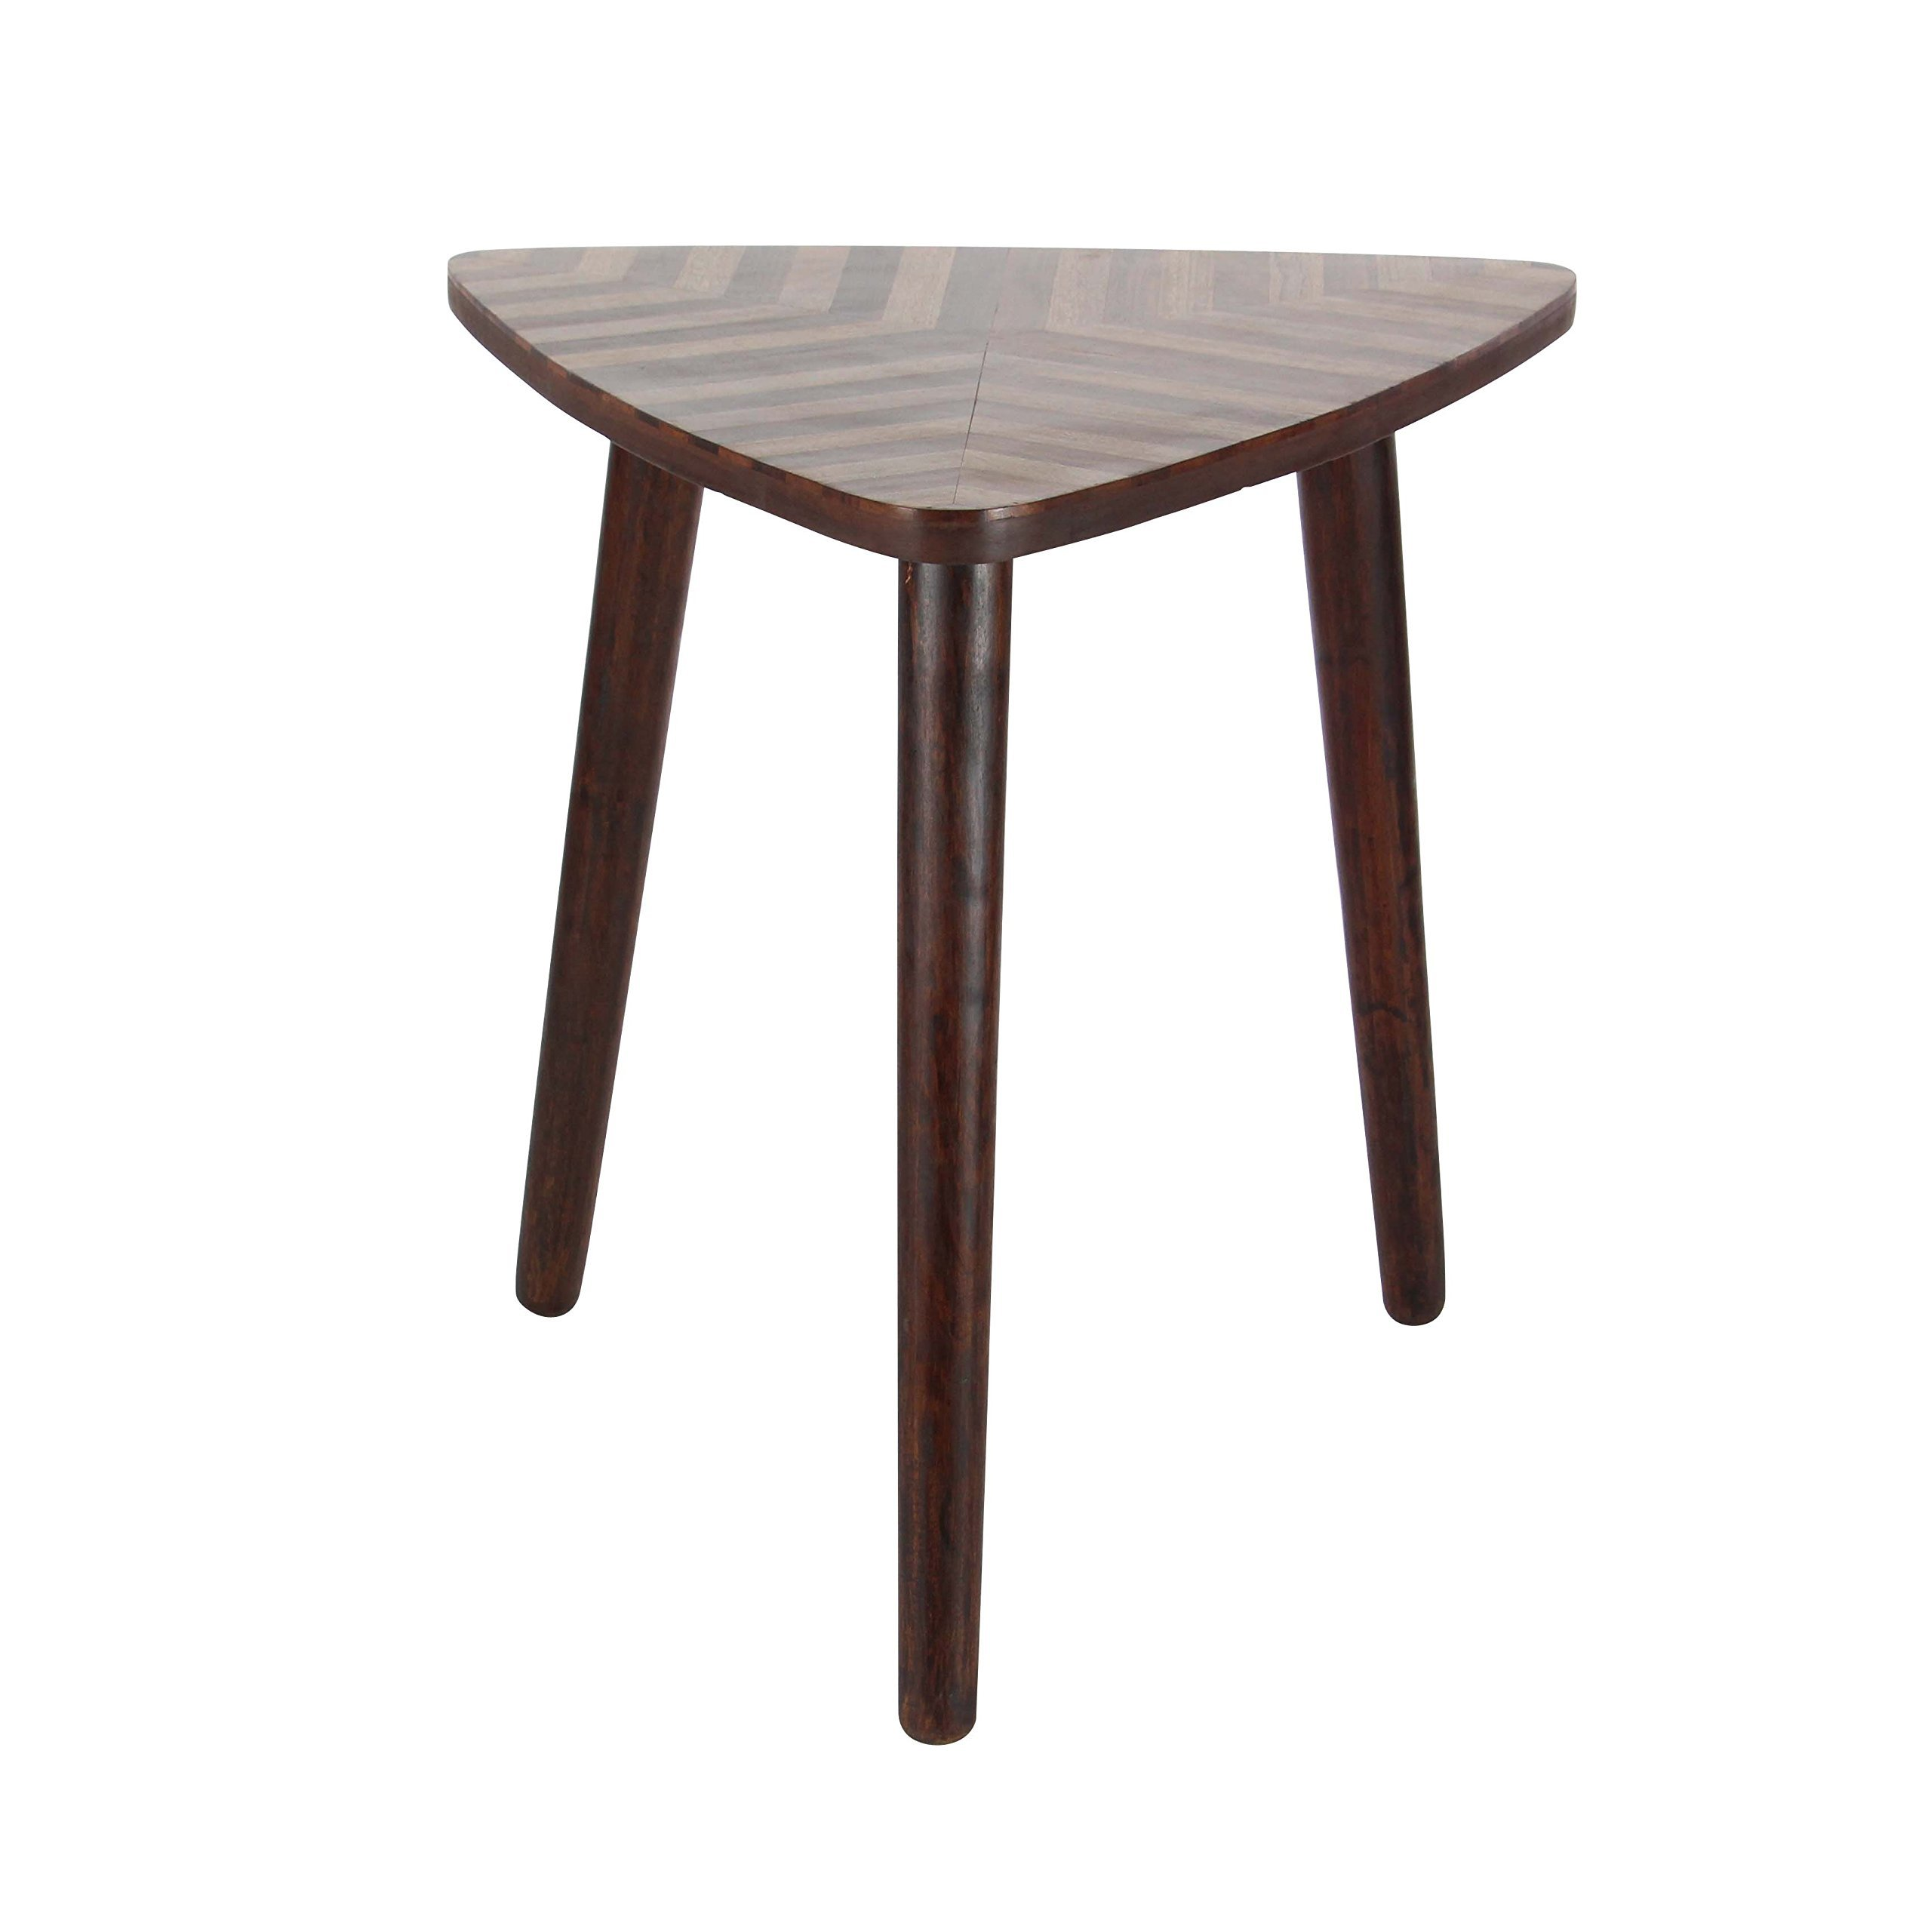 Deco 79 66183 Wooden Triangular Chevron Accent Table, Darkbrown